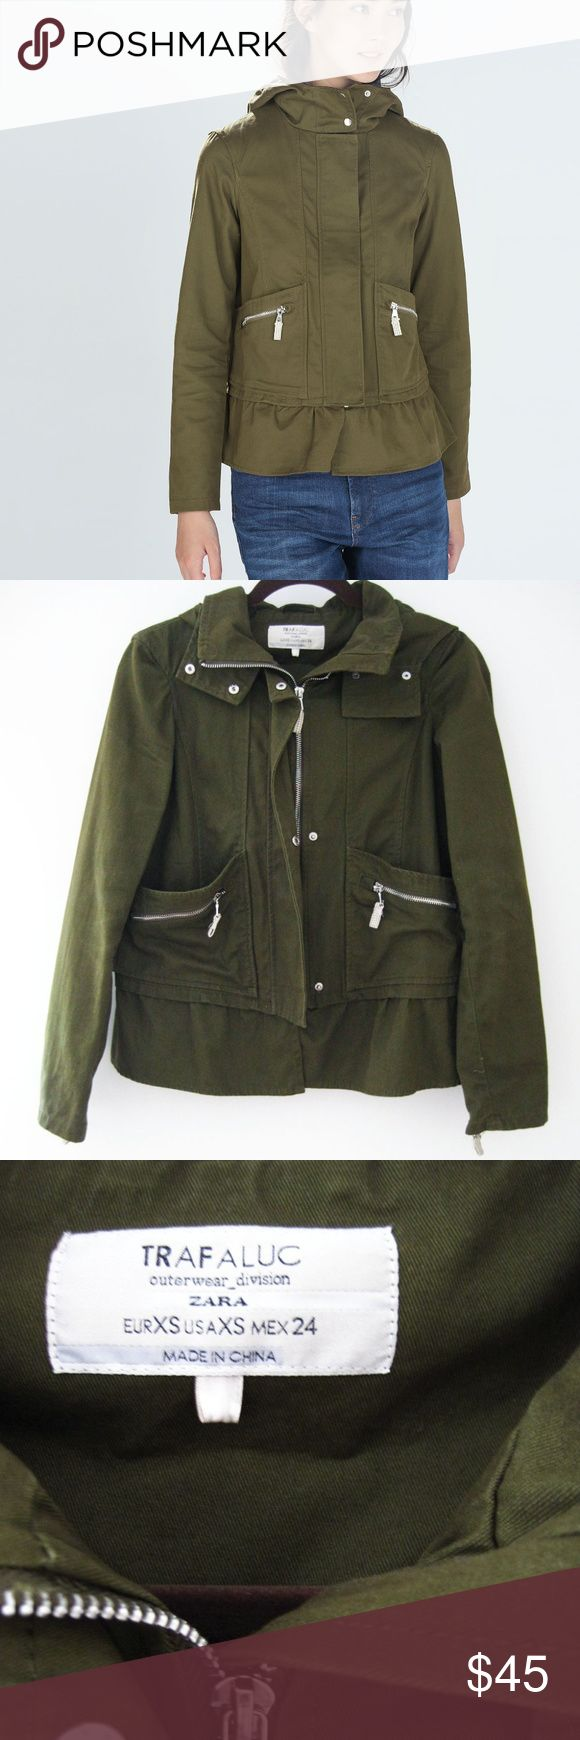 Zara TRF Green Canvas Utility Ruffle Jacket XS Zara TRF green canvas jacket featuring pocket zips, ruffle hem and hoodie. Excellent condition-worn 3x. Smoke/pet-free home. Feel free to ask questions! Credit Zara online image for 1st & last photo. Zara Jackets & Coats Utility Jackets